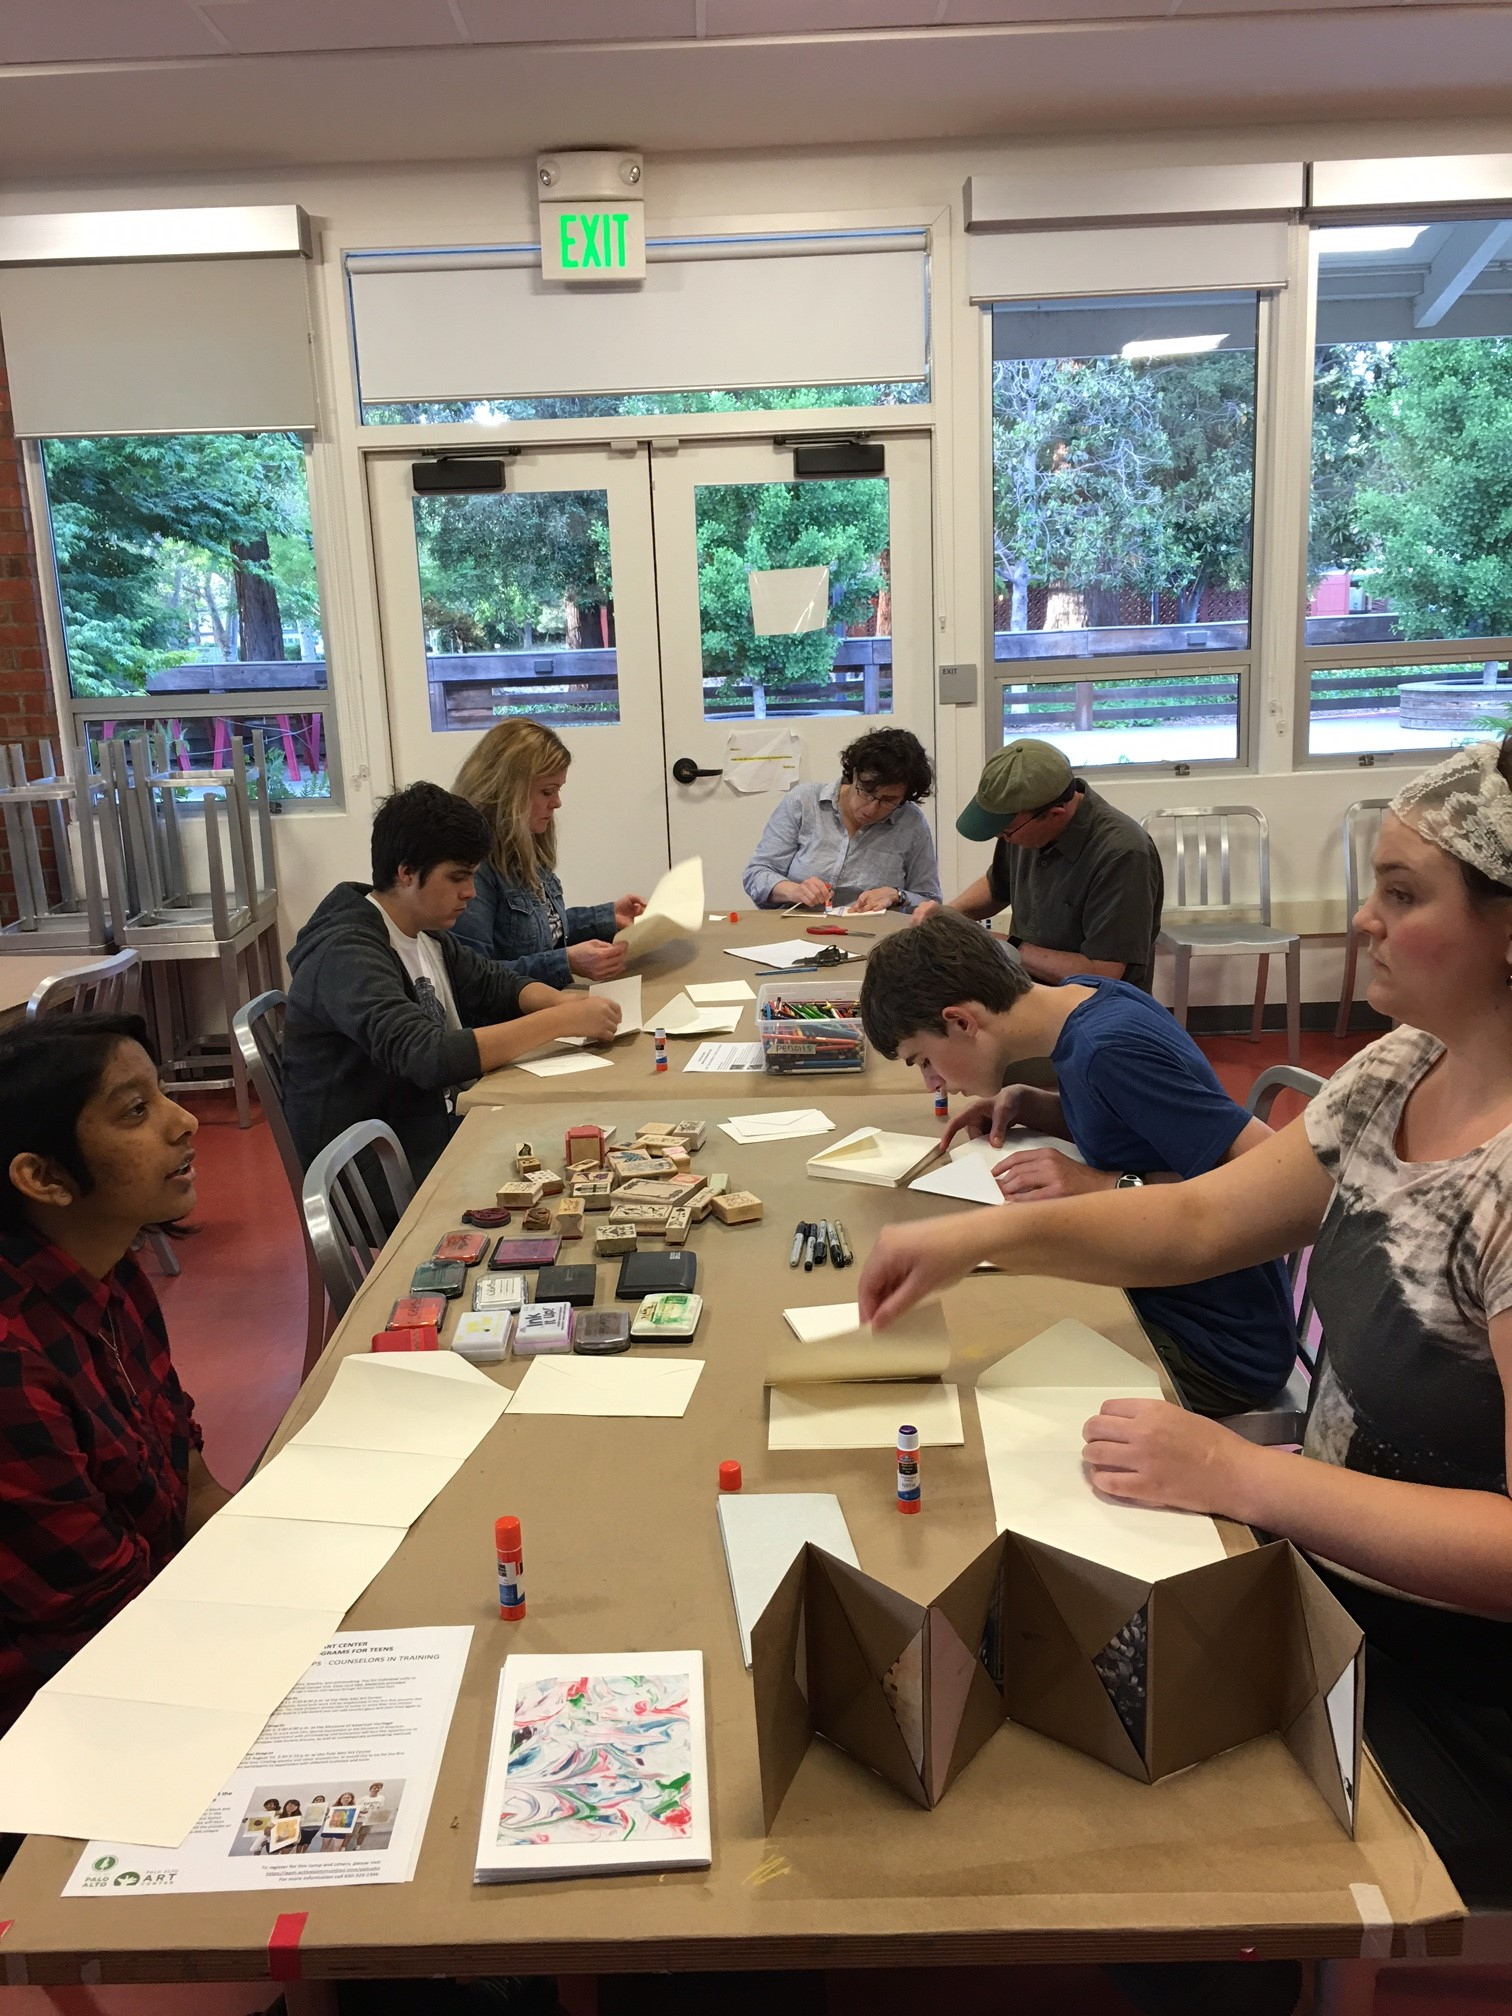 Parents and Teens making art together